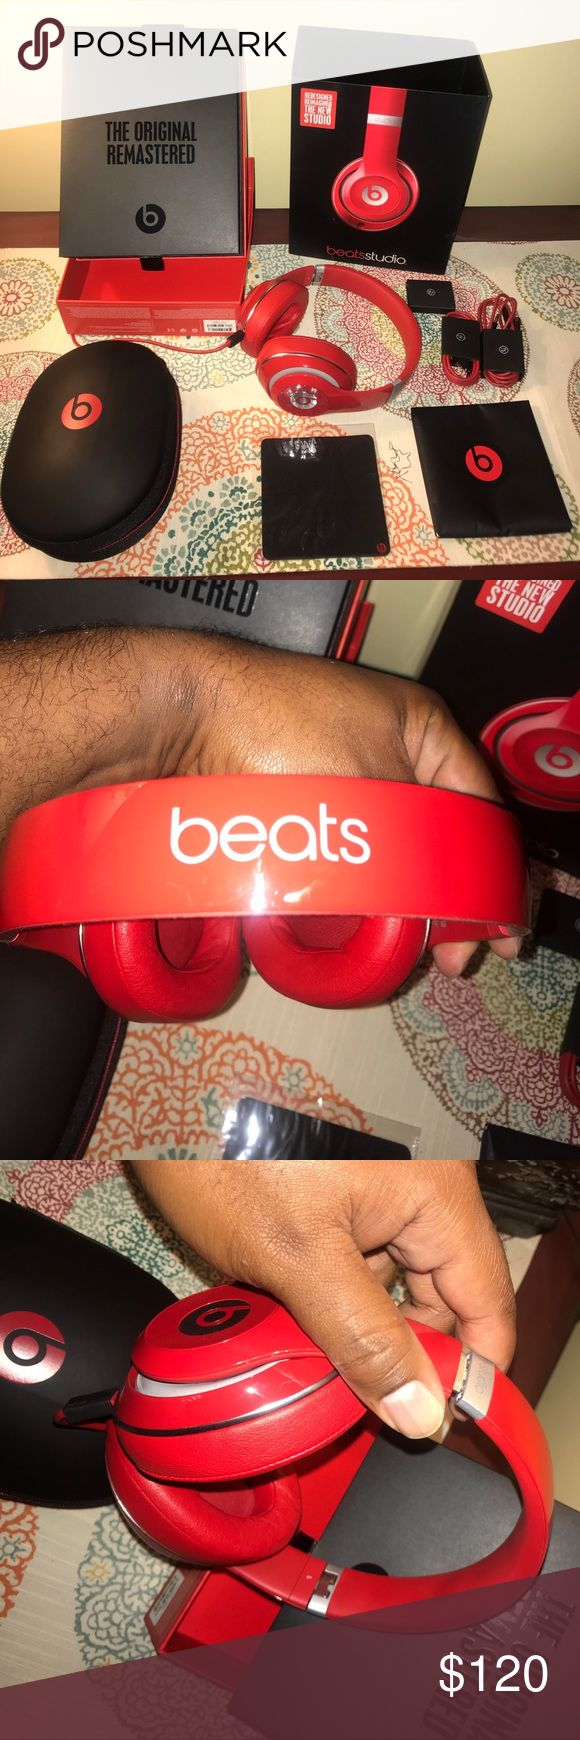 Updated Beats studio Headphones These are the updated 2015-2016 version. Used a few times but upgraded to another headset. Excellent condition despite a small pinhole in the ear cuff, see picture above. beats by Dr. Dre Other